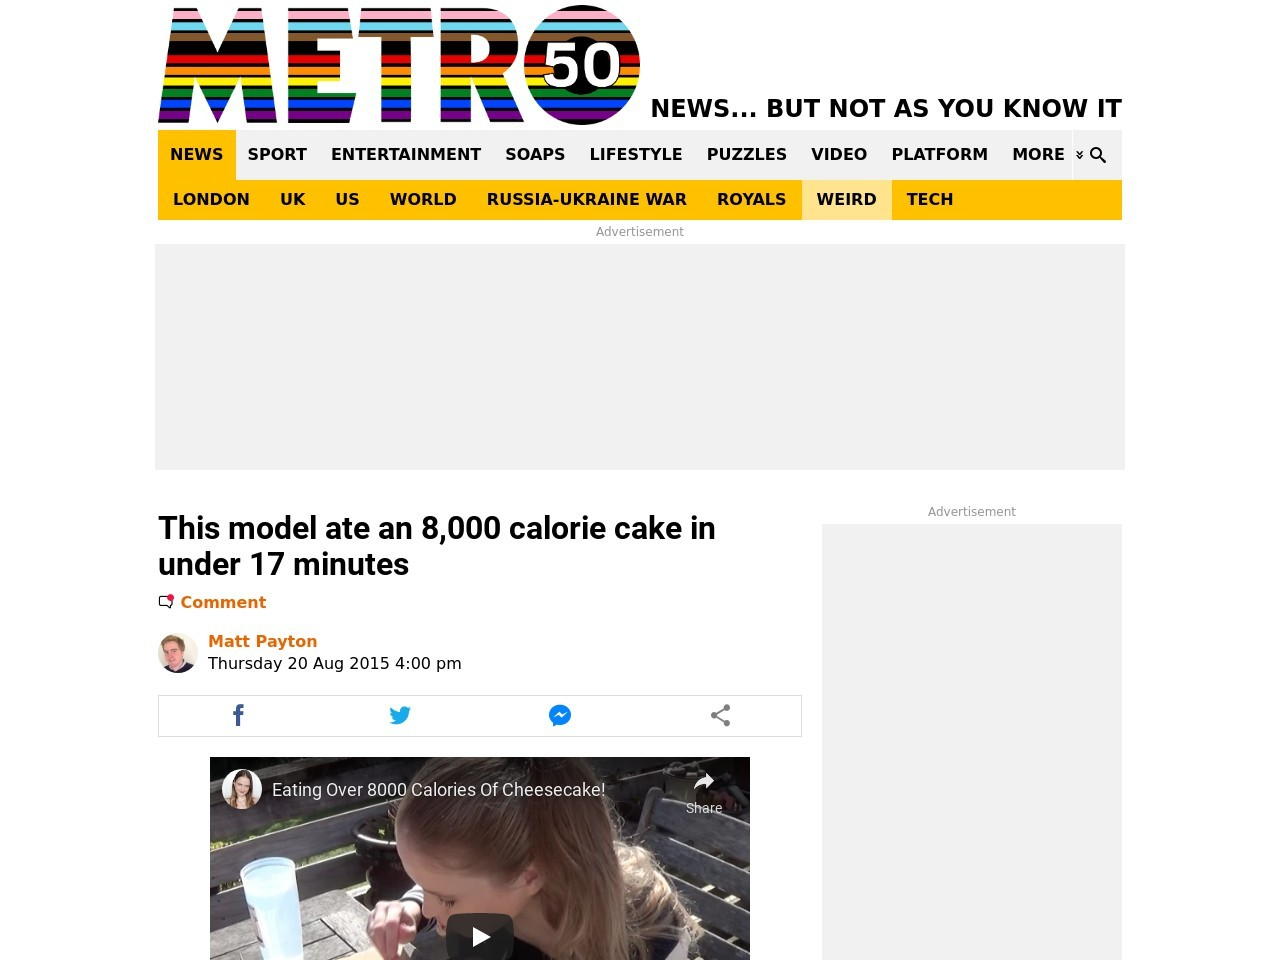 This model ate an 8,000 calorie cake in under 17 minutes